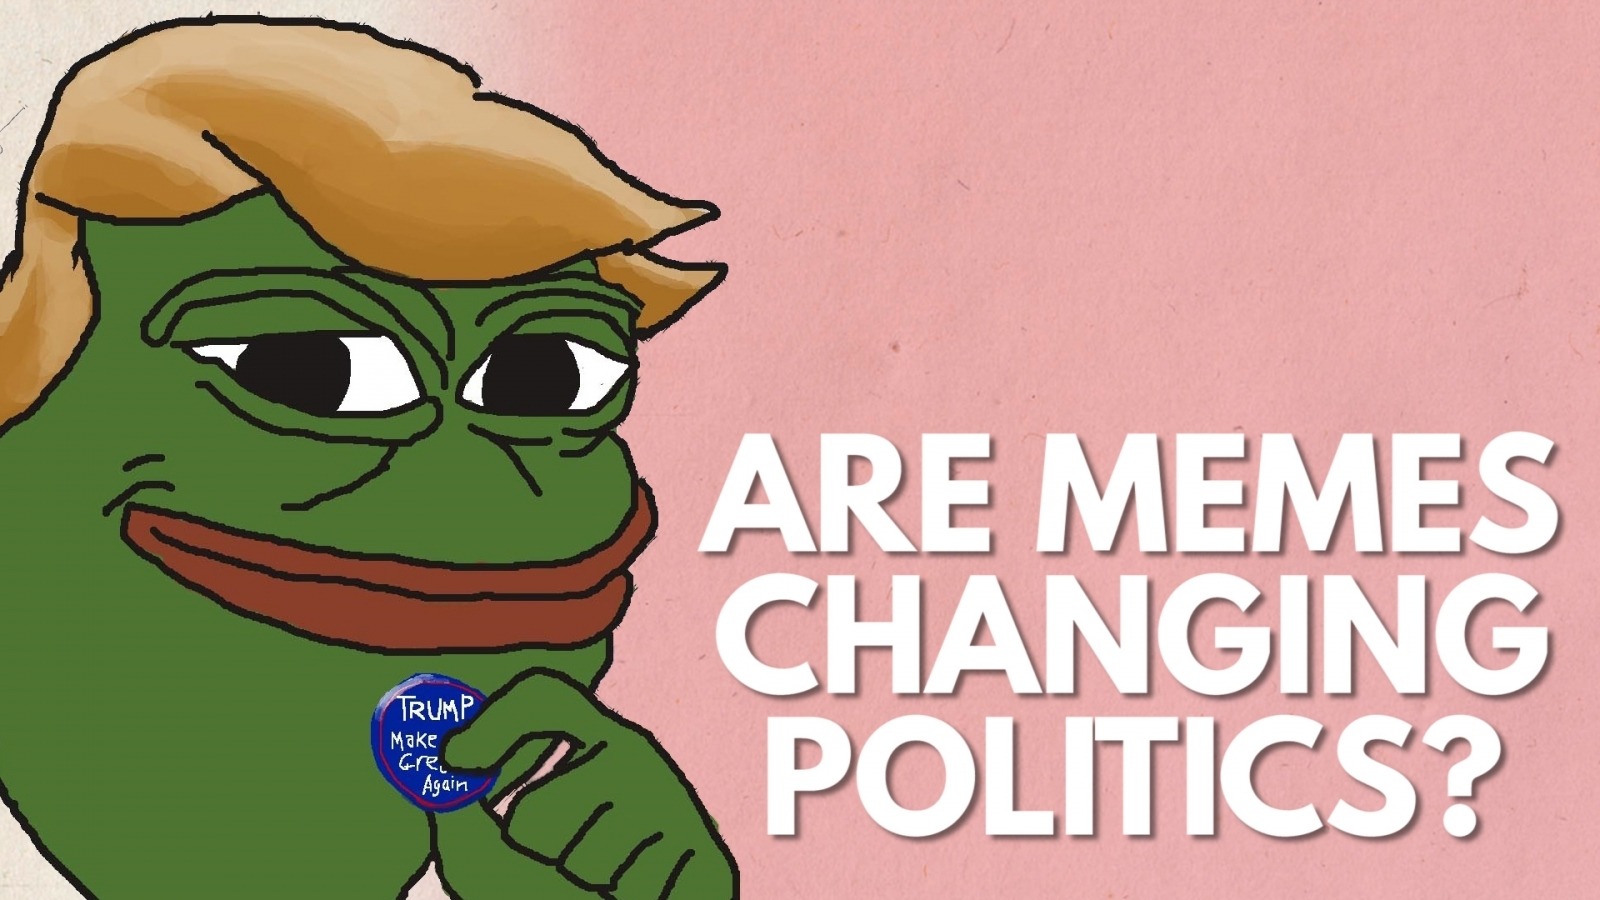 Are memes changing politics?